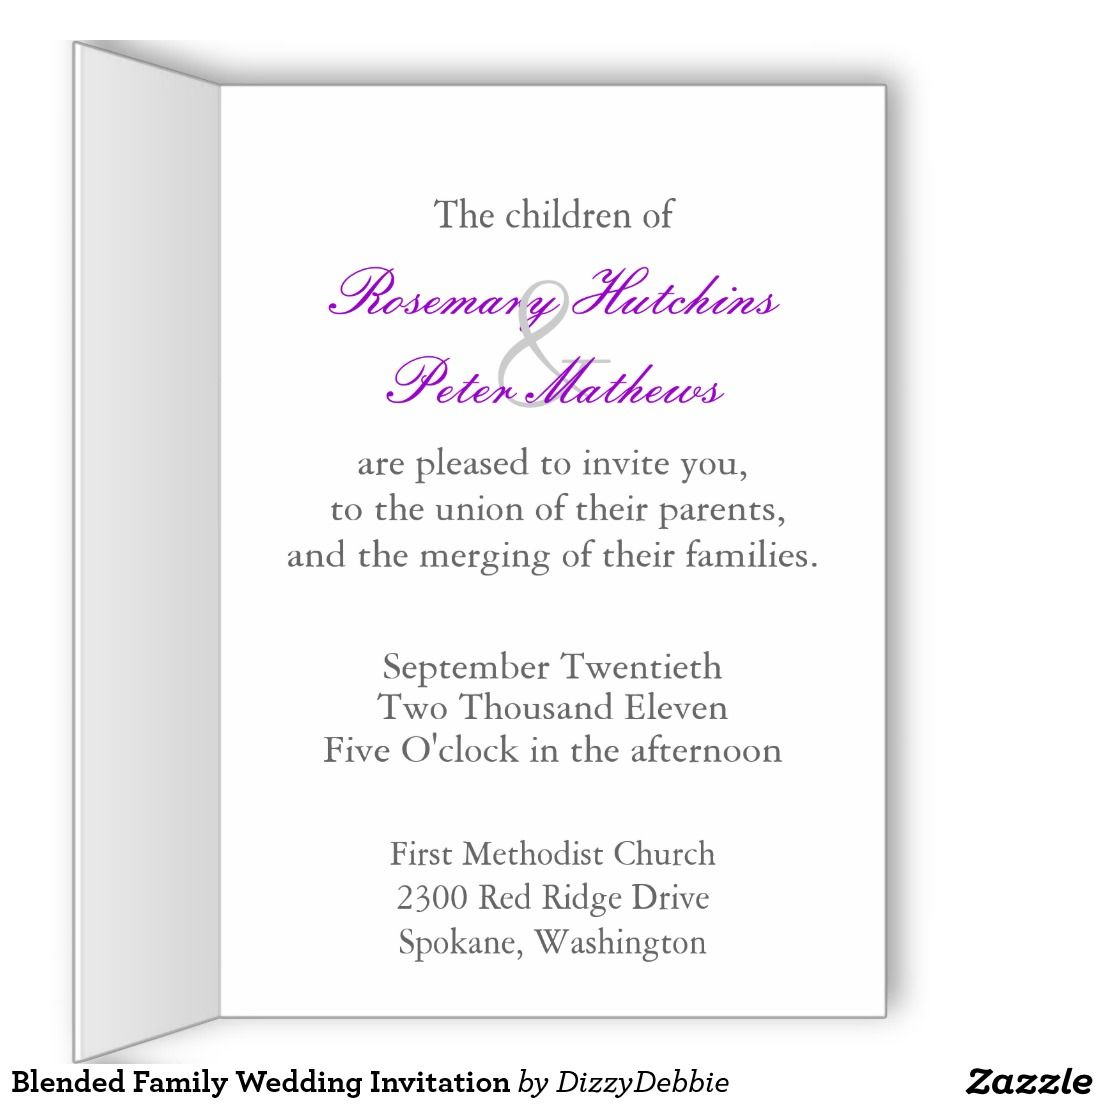 In memory of family wedding sign we know you by signstoliveby - Blended Family Wedding Invitation